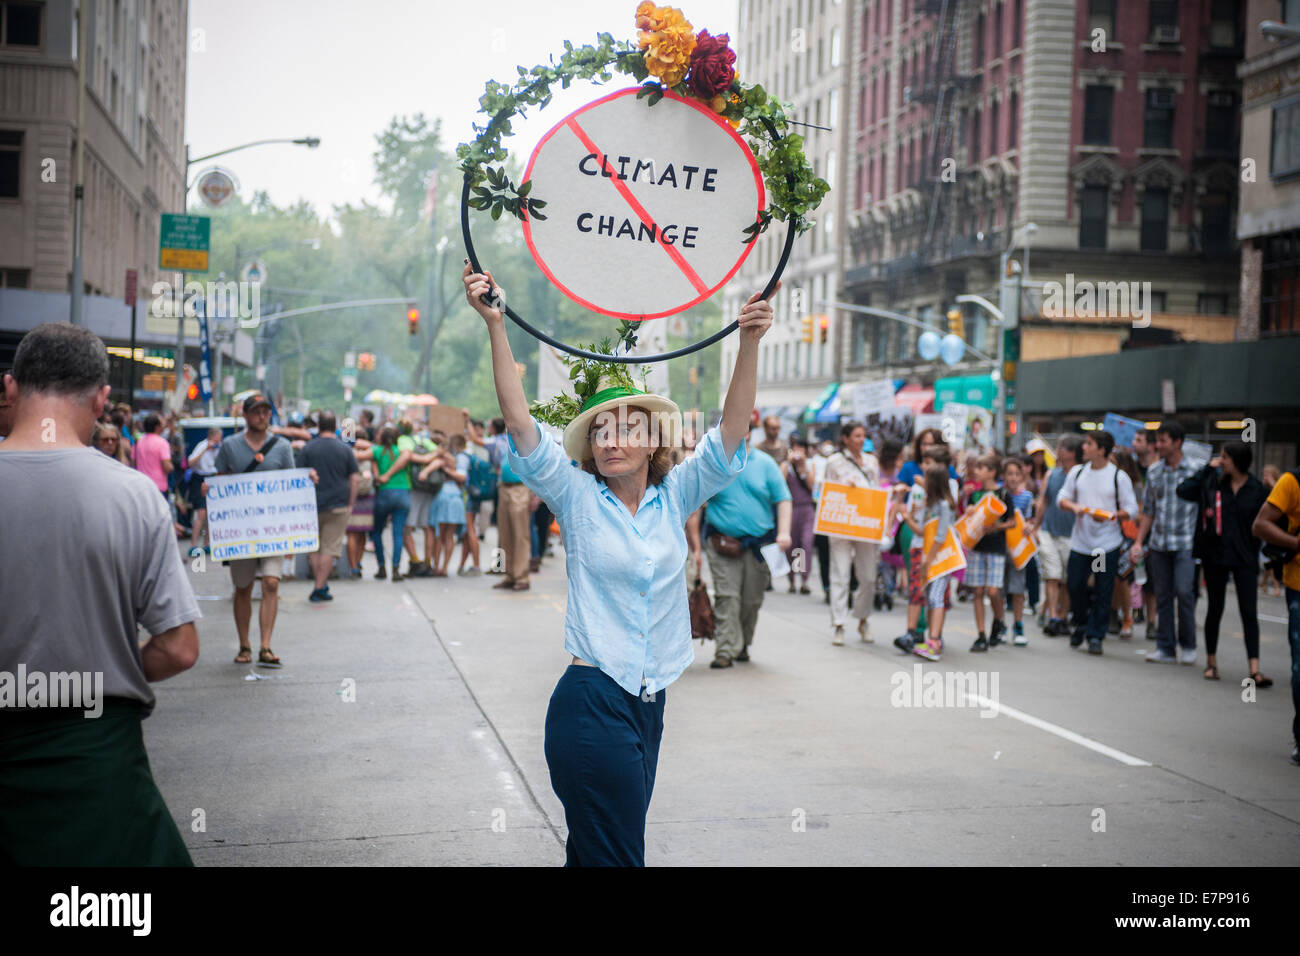 A woman holds a sign against climate change in Midtown Manhattan in New York in the People's Climate march - Stock Image